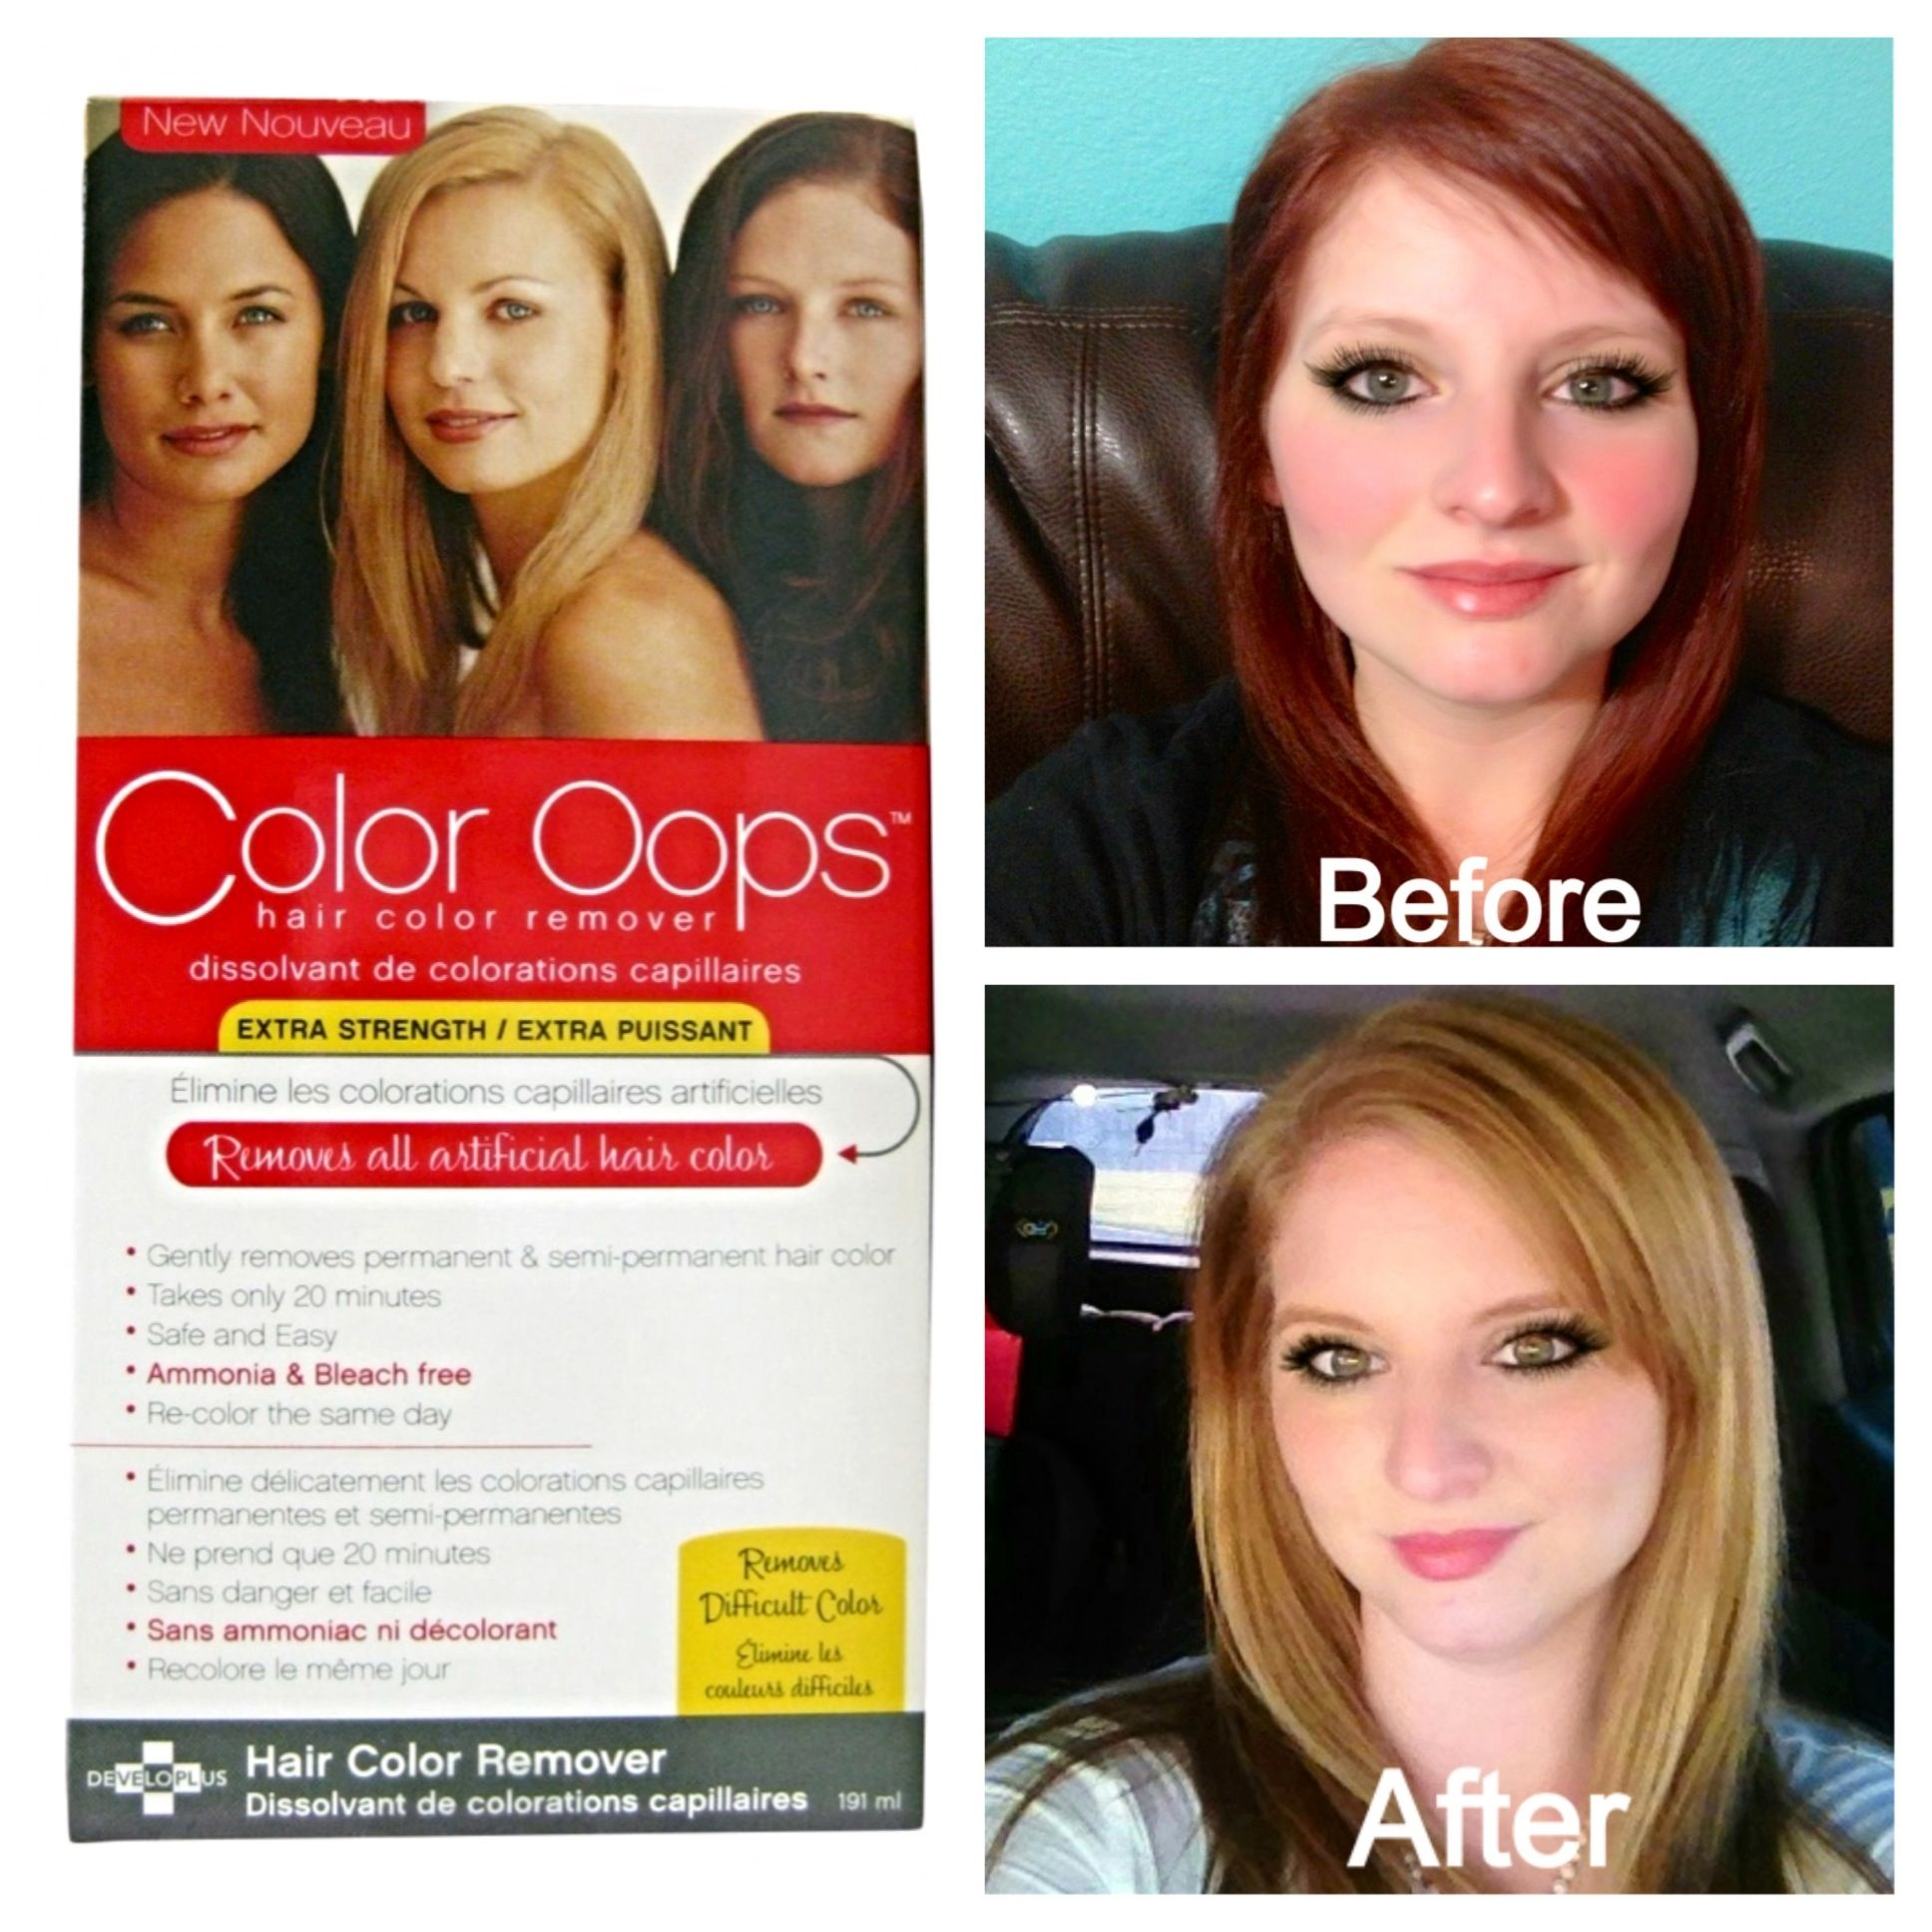 Color Oops is a safe way to remove permanent and semi